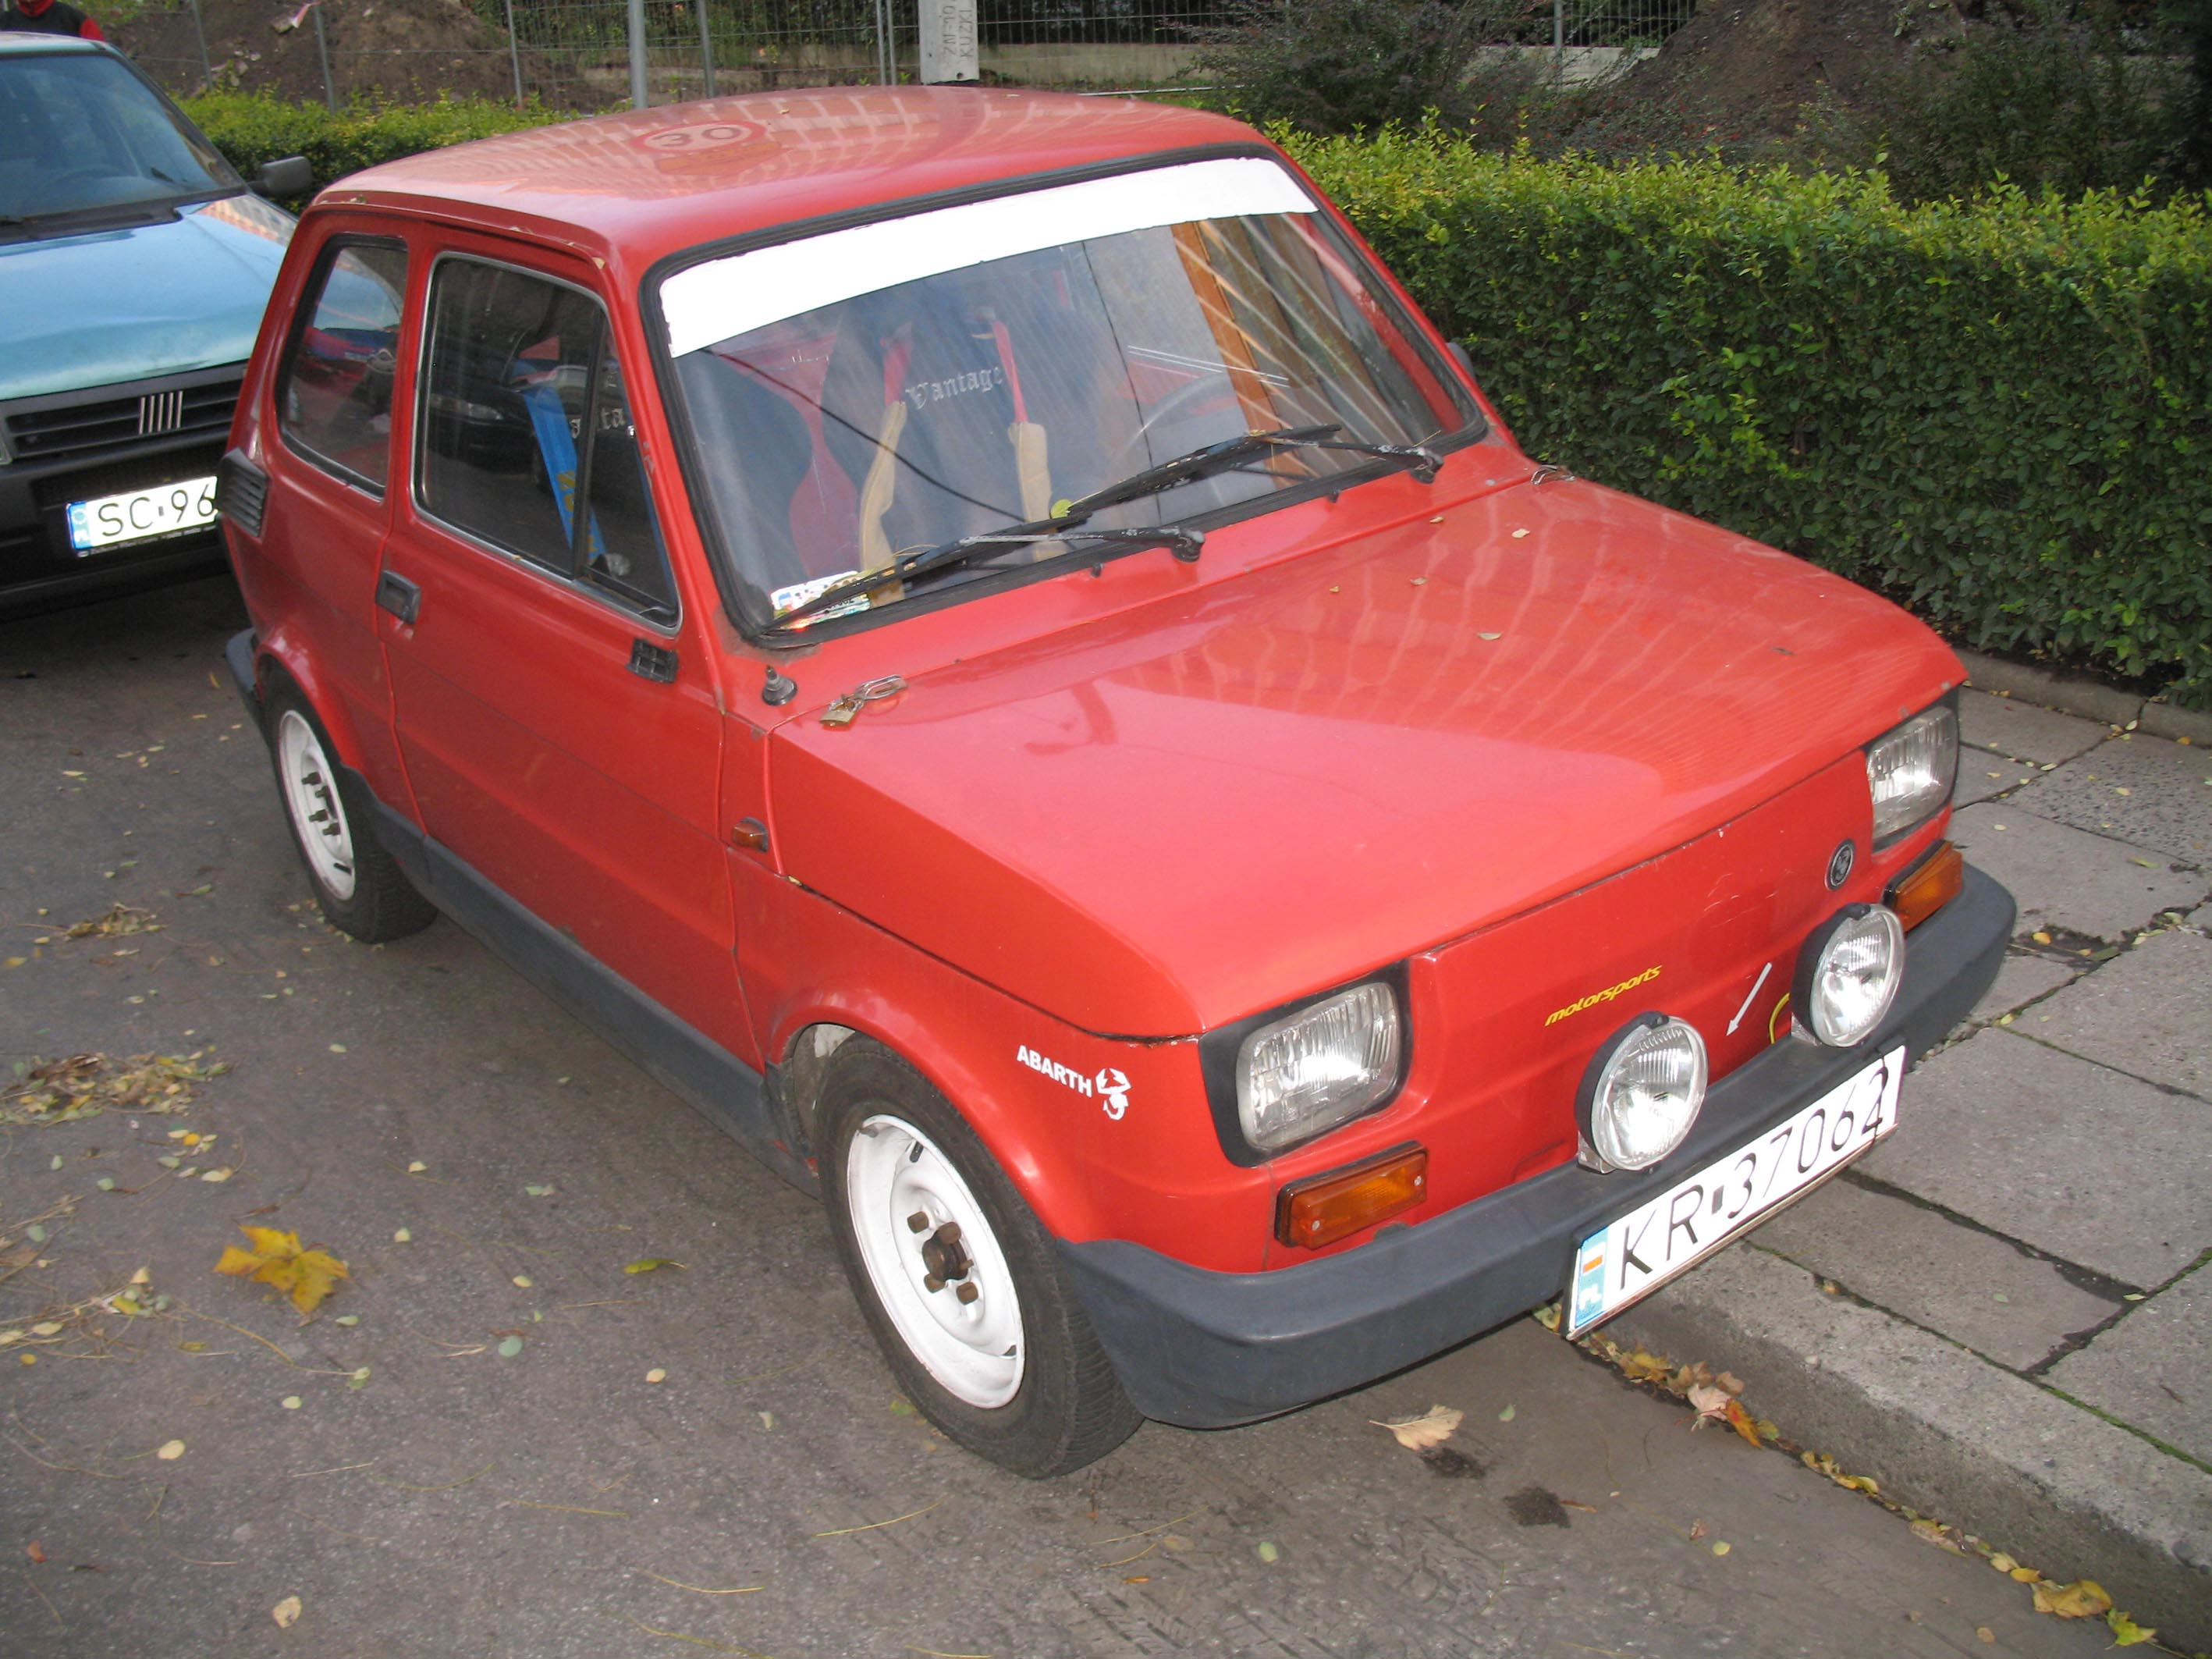 file abarth fiat 126p 650 wikimedia commons. Black Bedroom Furniture Sets. Home Design Ideas